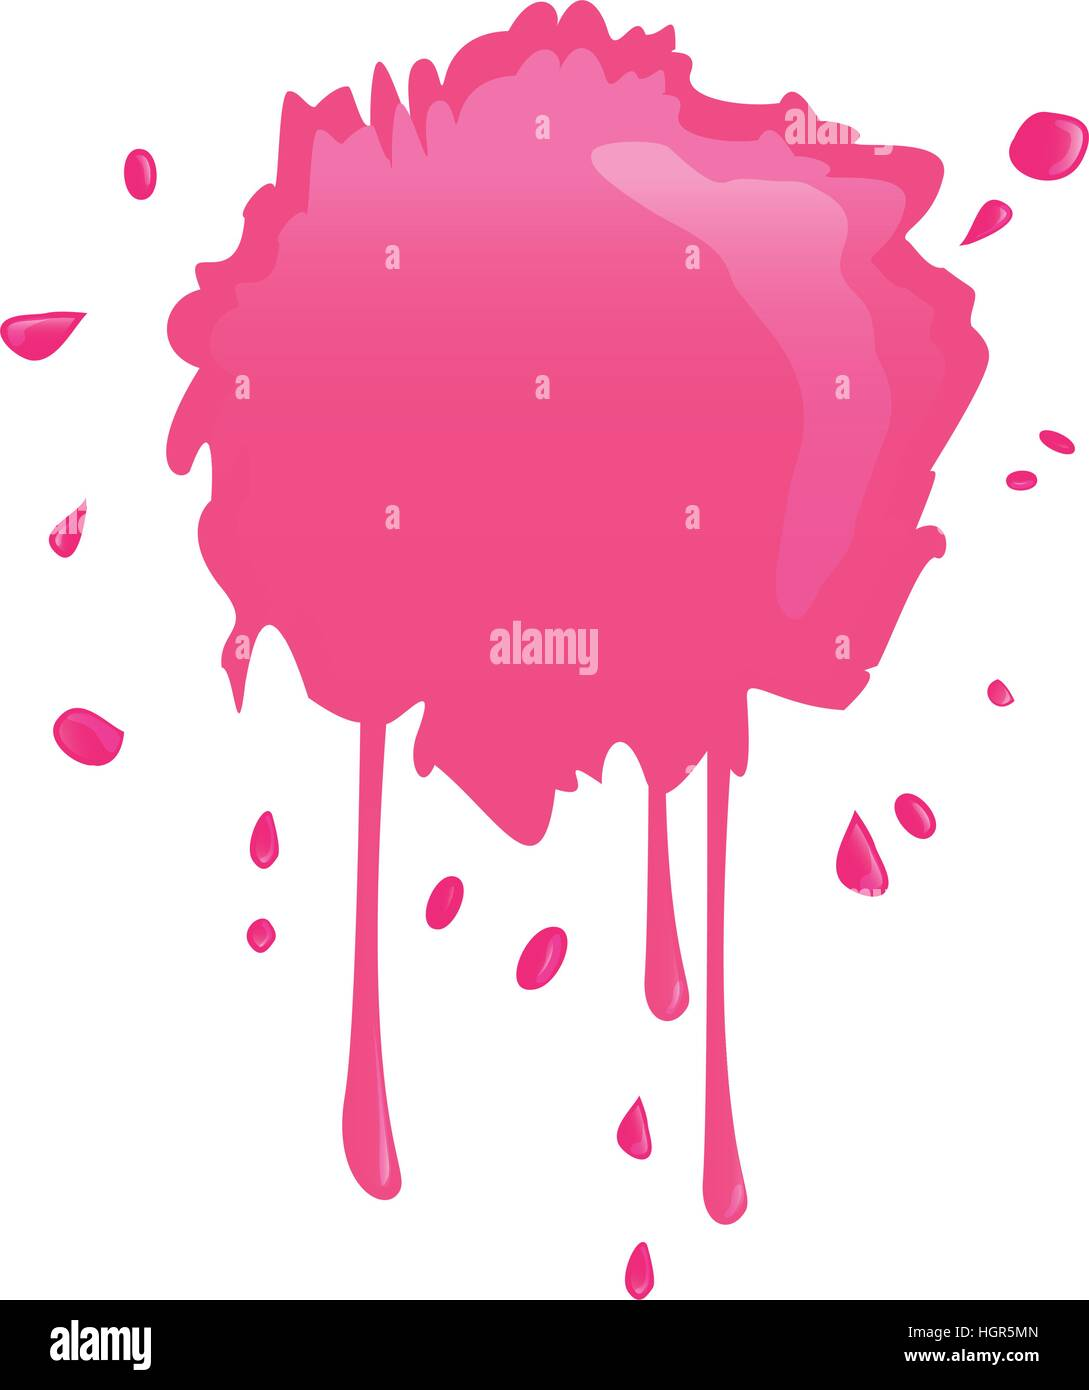 Bright Pink Paint Hot Pink Paint Splatter Icon Image Vector Illustration Design